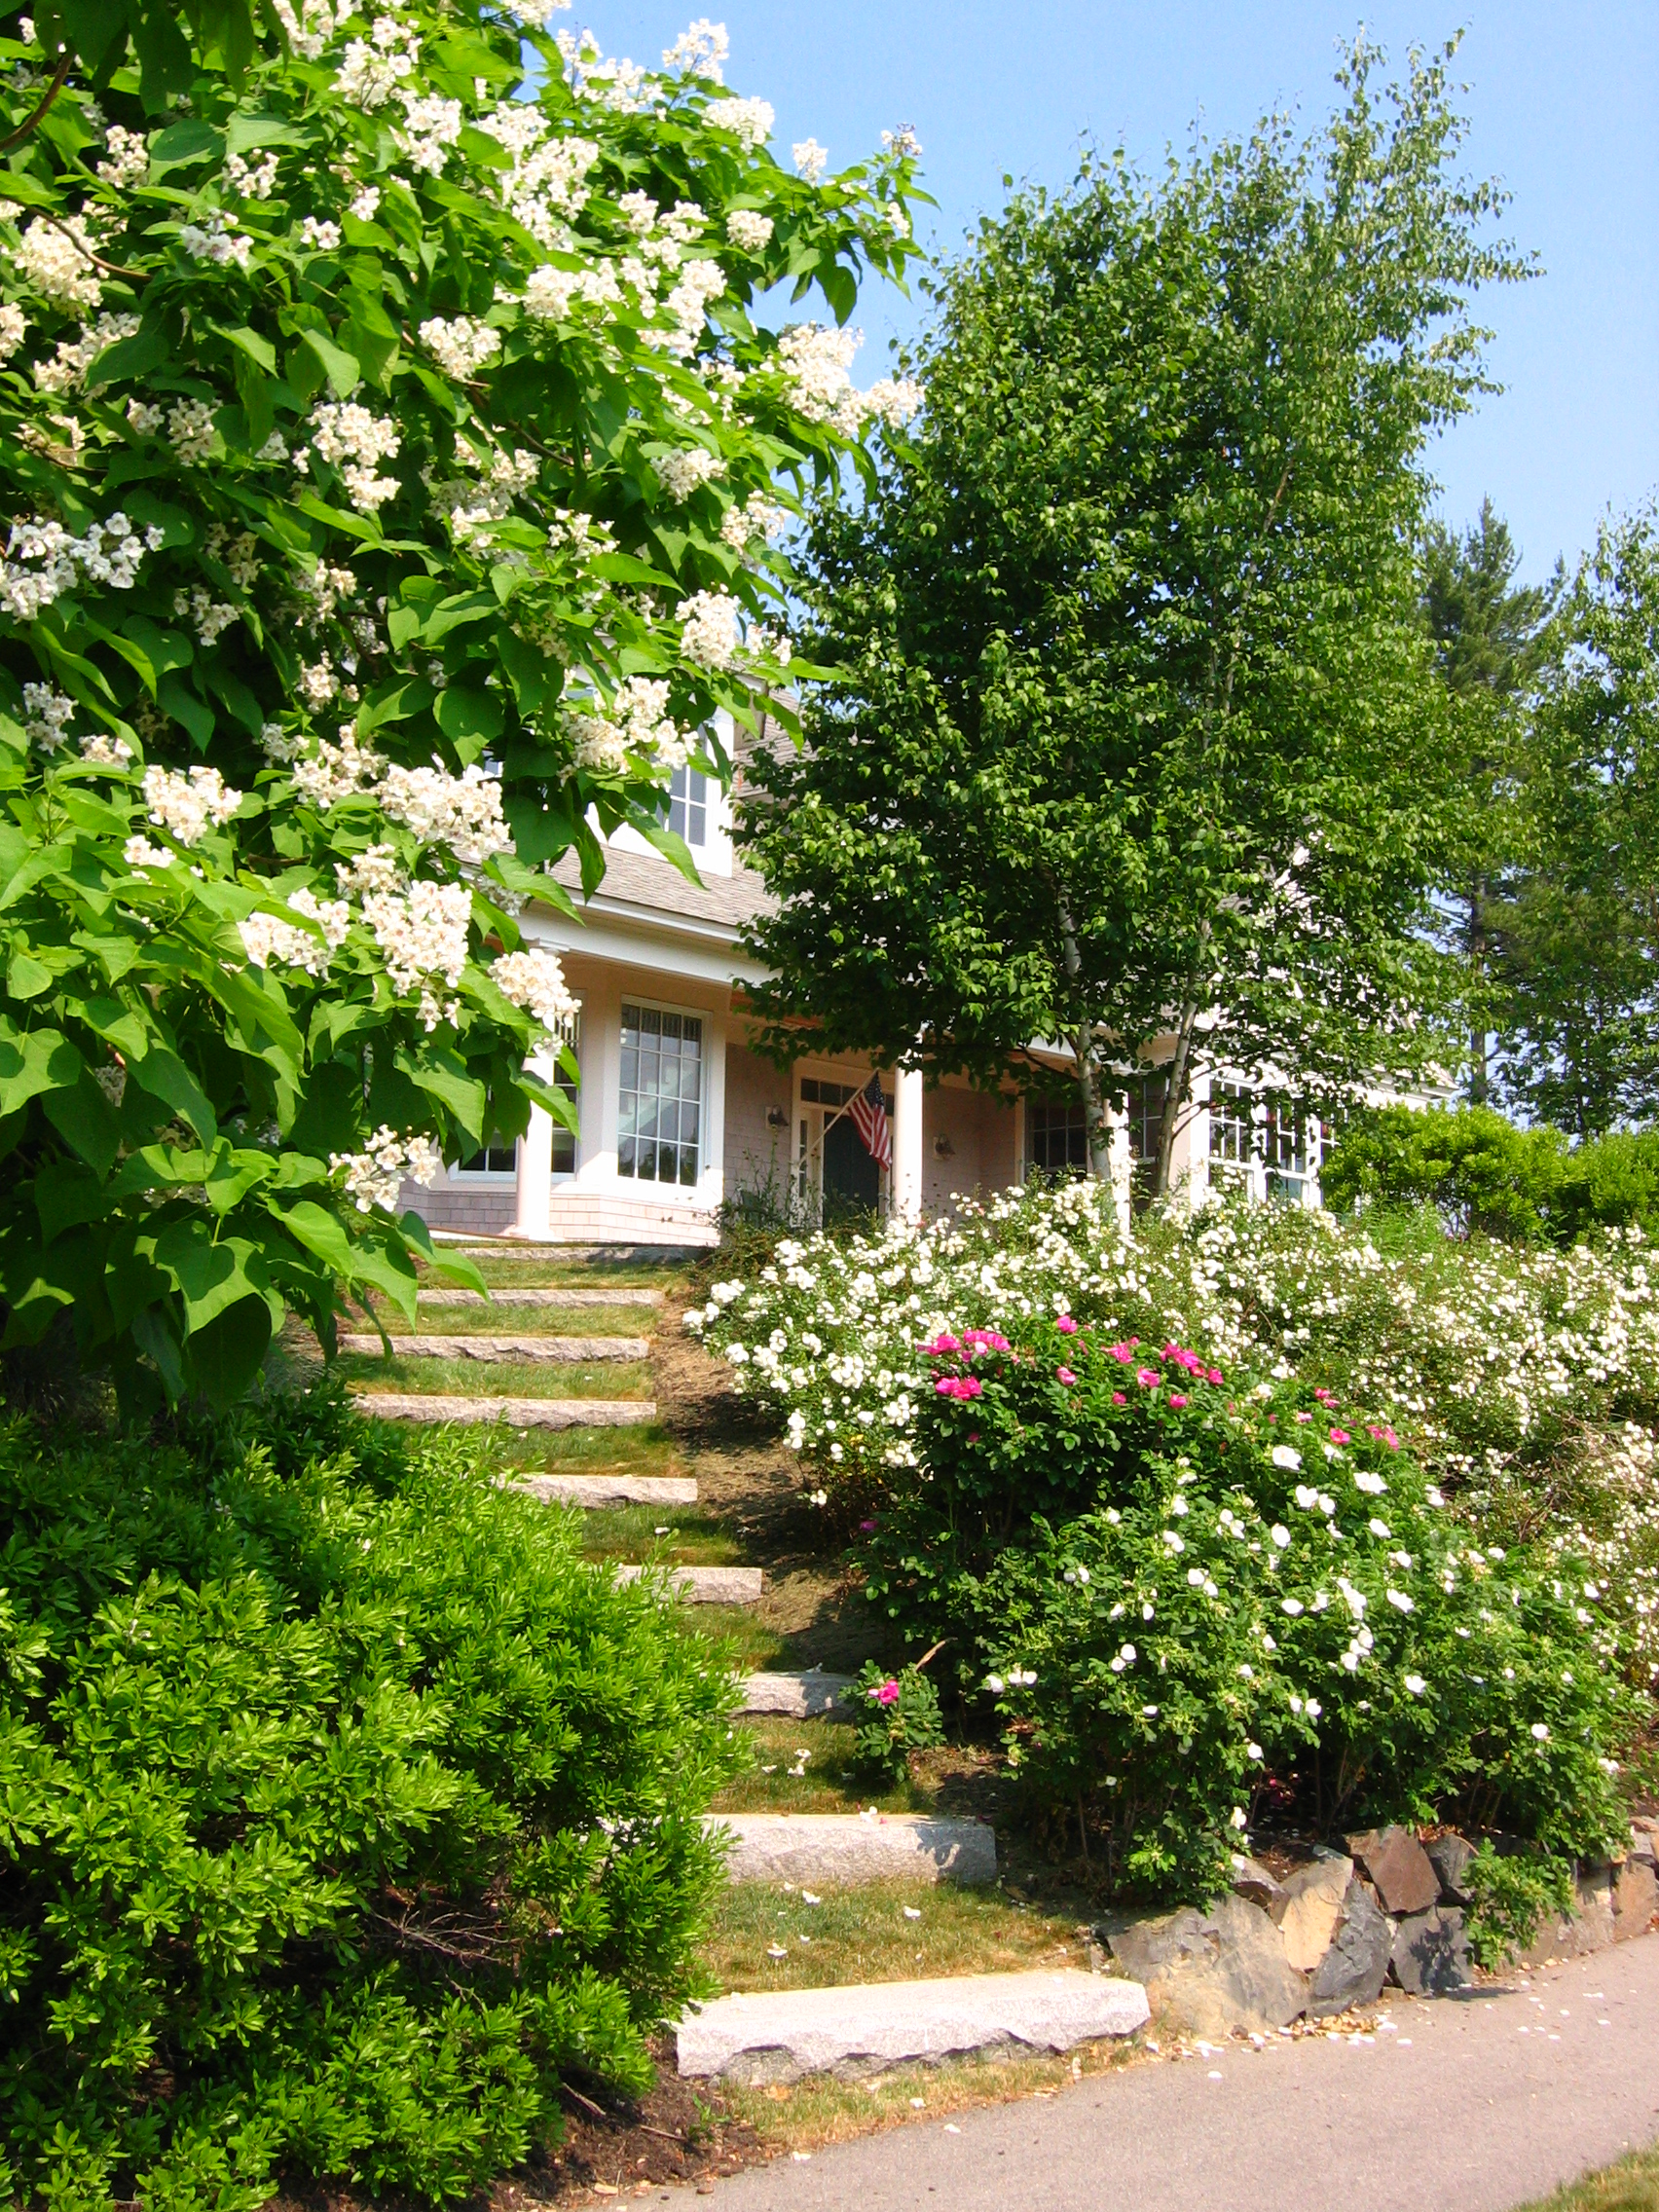 Granite Steps set in Lawn.JPG